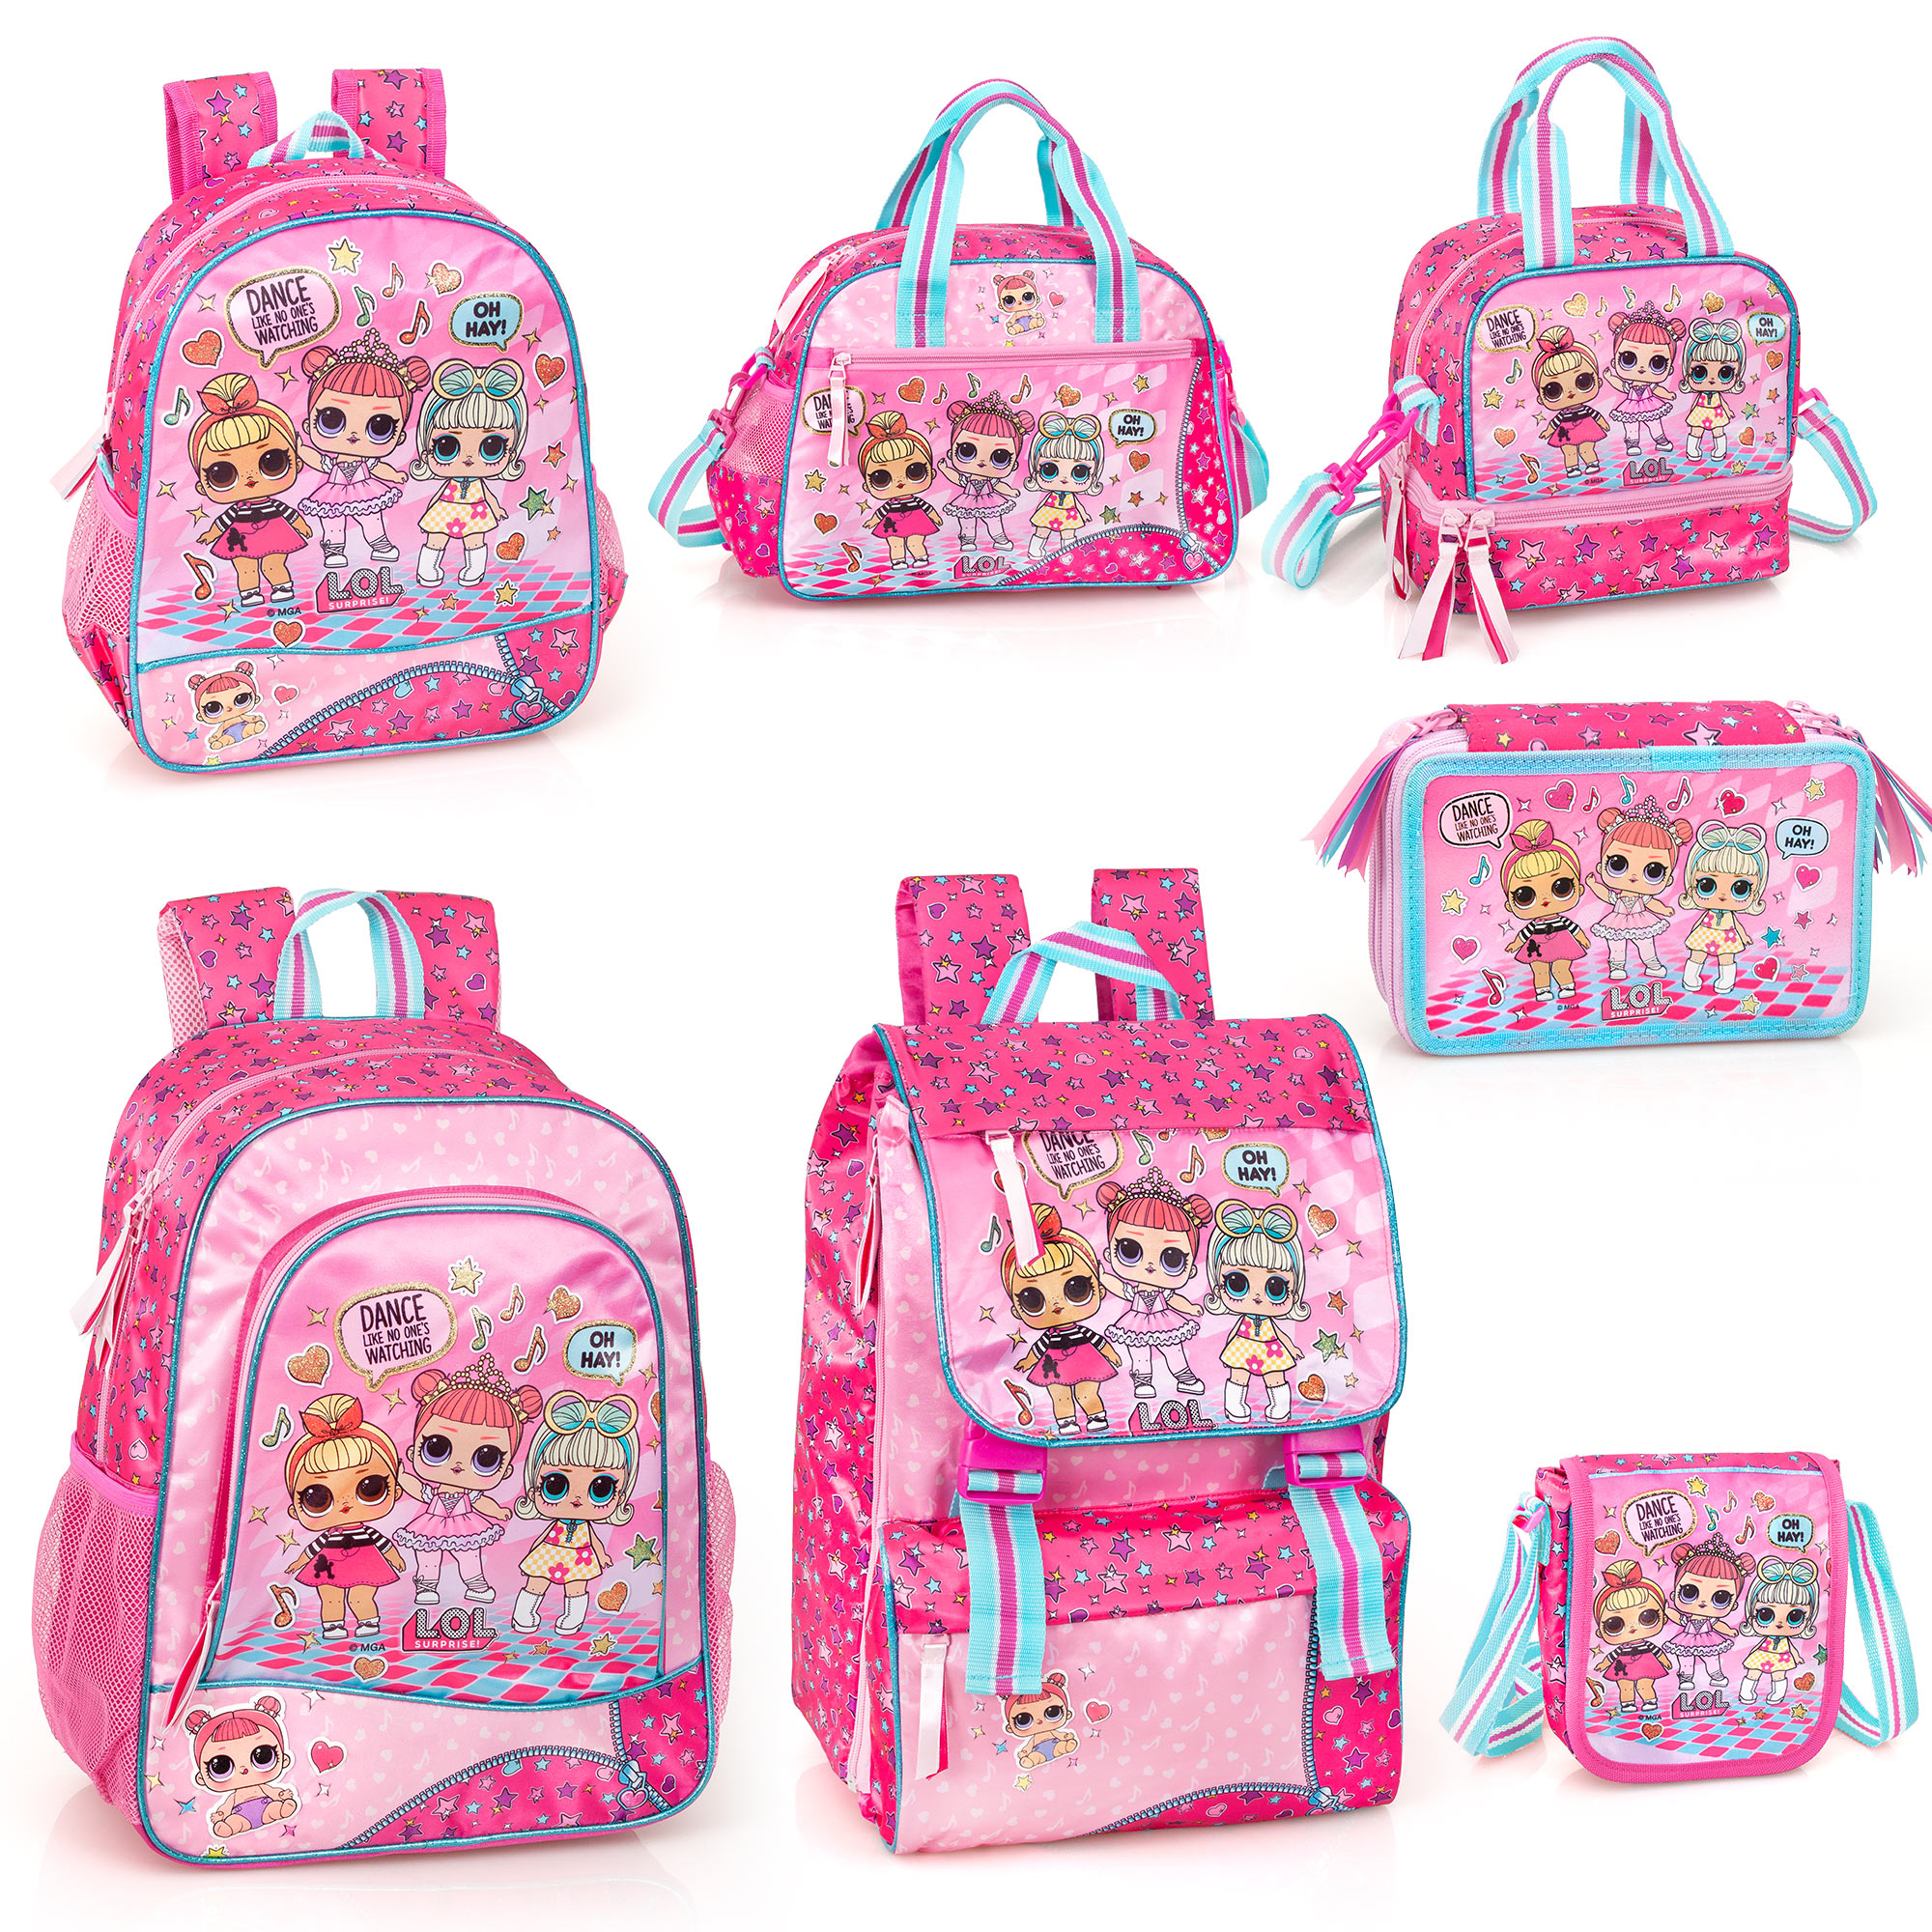 LOL Surprise Oh Hay Girls Backpack Rucksack Travel School Bag Lunch Bag OFFICIAL